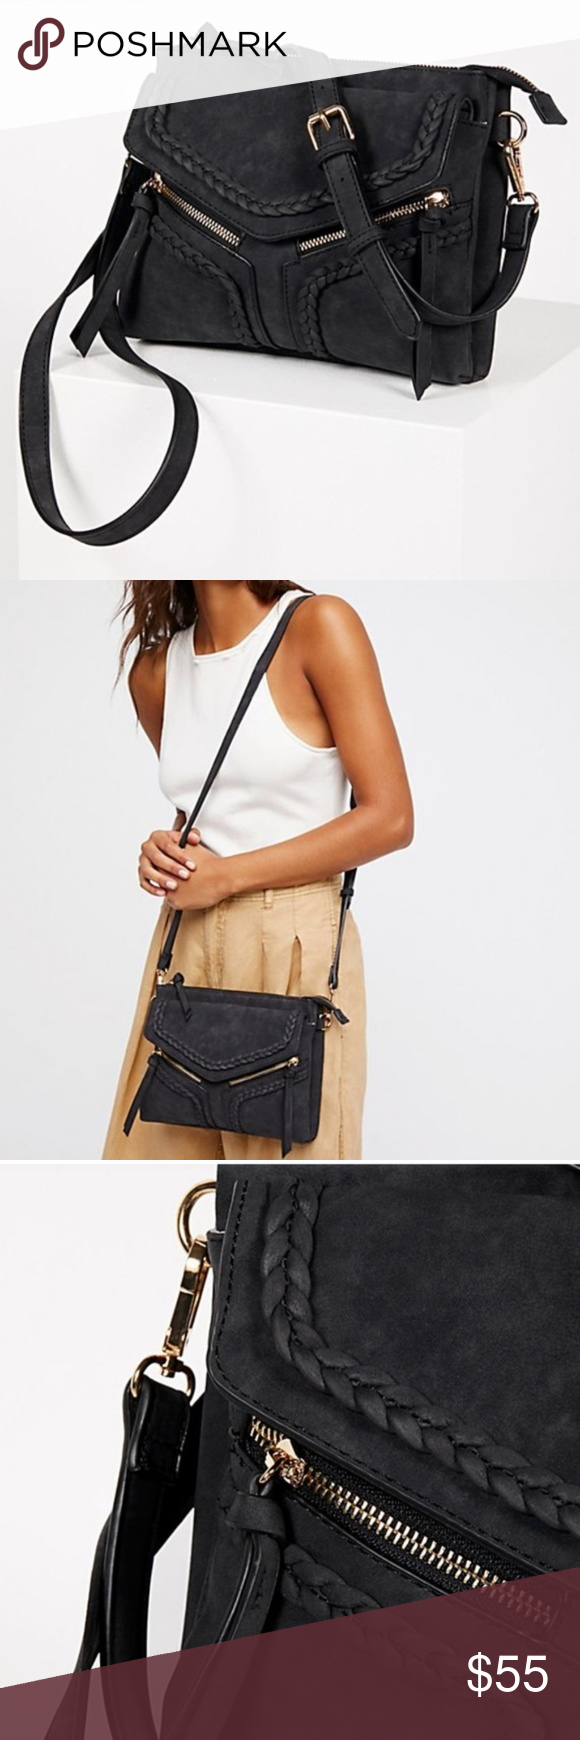 3609865b9919 Free People Leanna Braided Crossbody Bag Free People line Violet Ray Leanna  faux leather crossbody bag